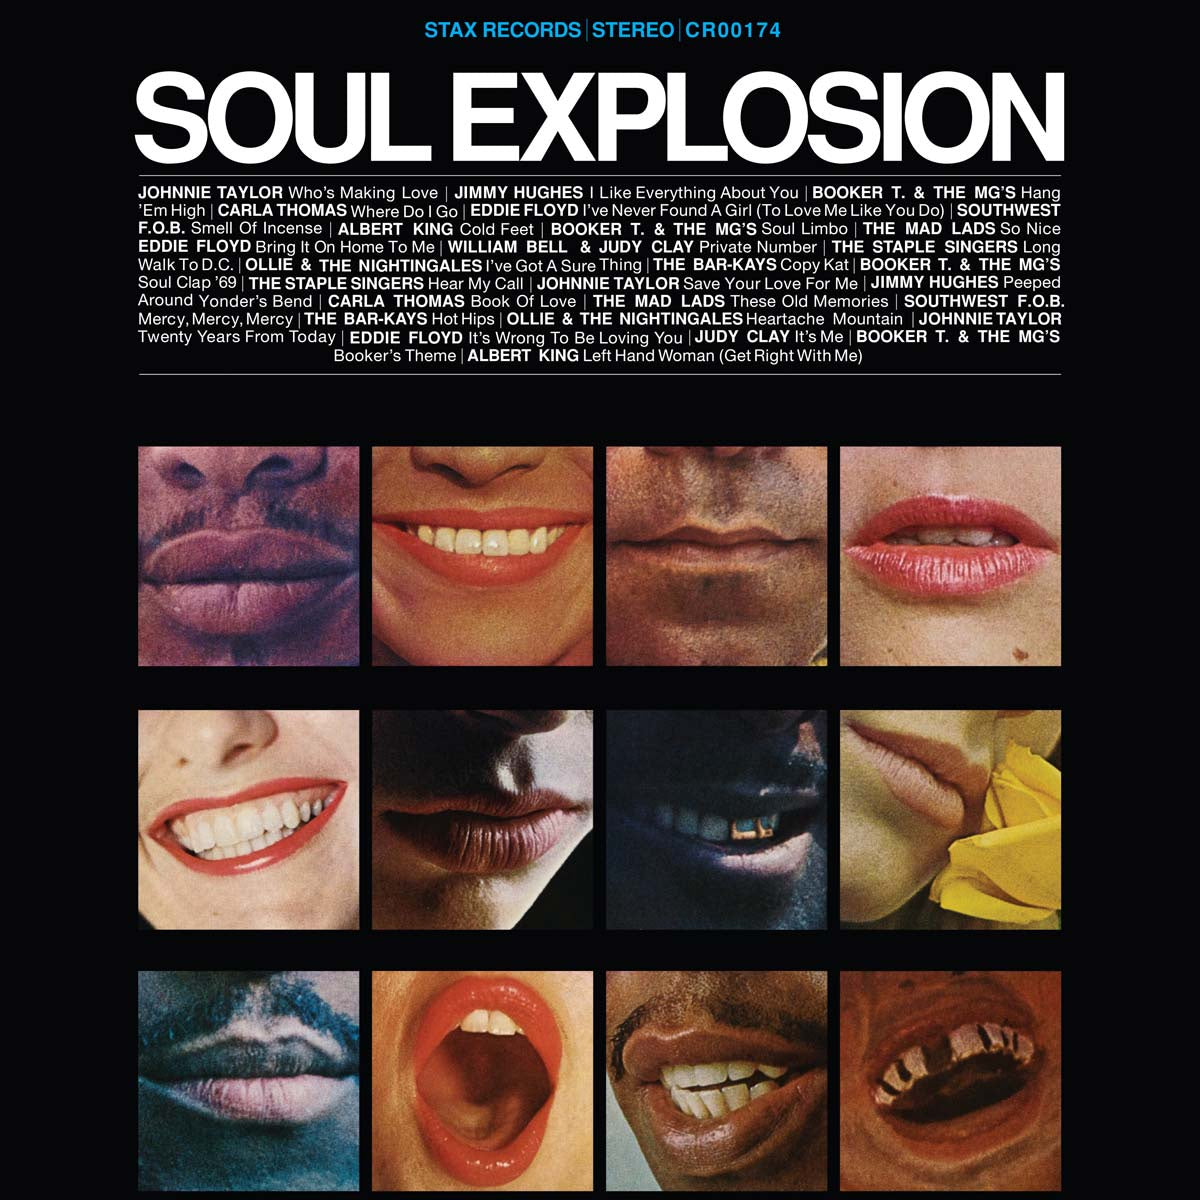 Various - Soul Explosion (1969) - New 2019 Compilation Record 2LP Vinyl Reissue - Soul